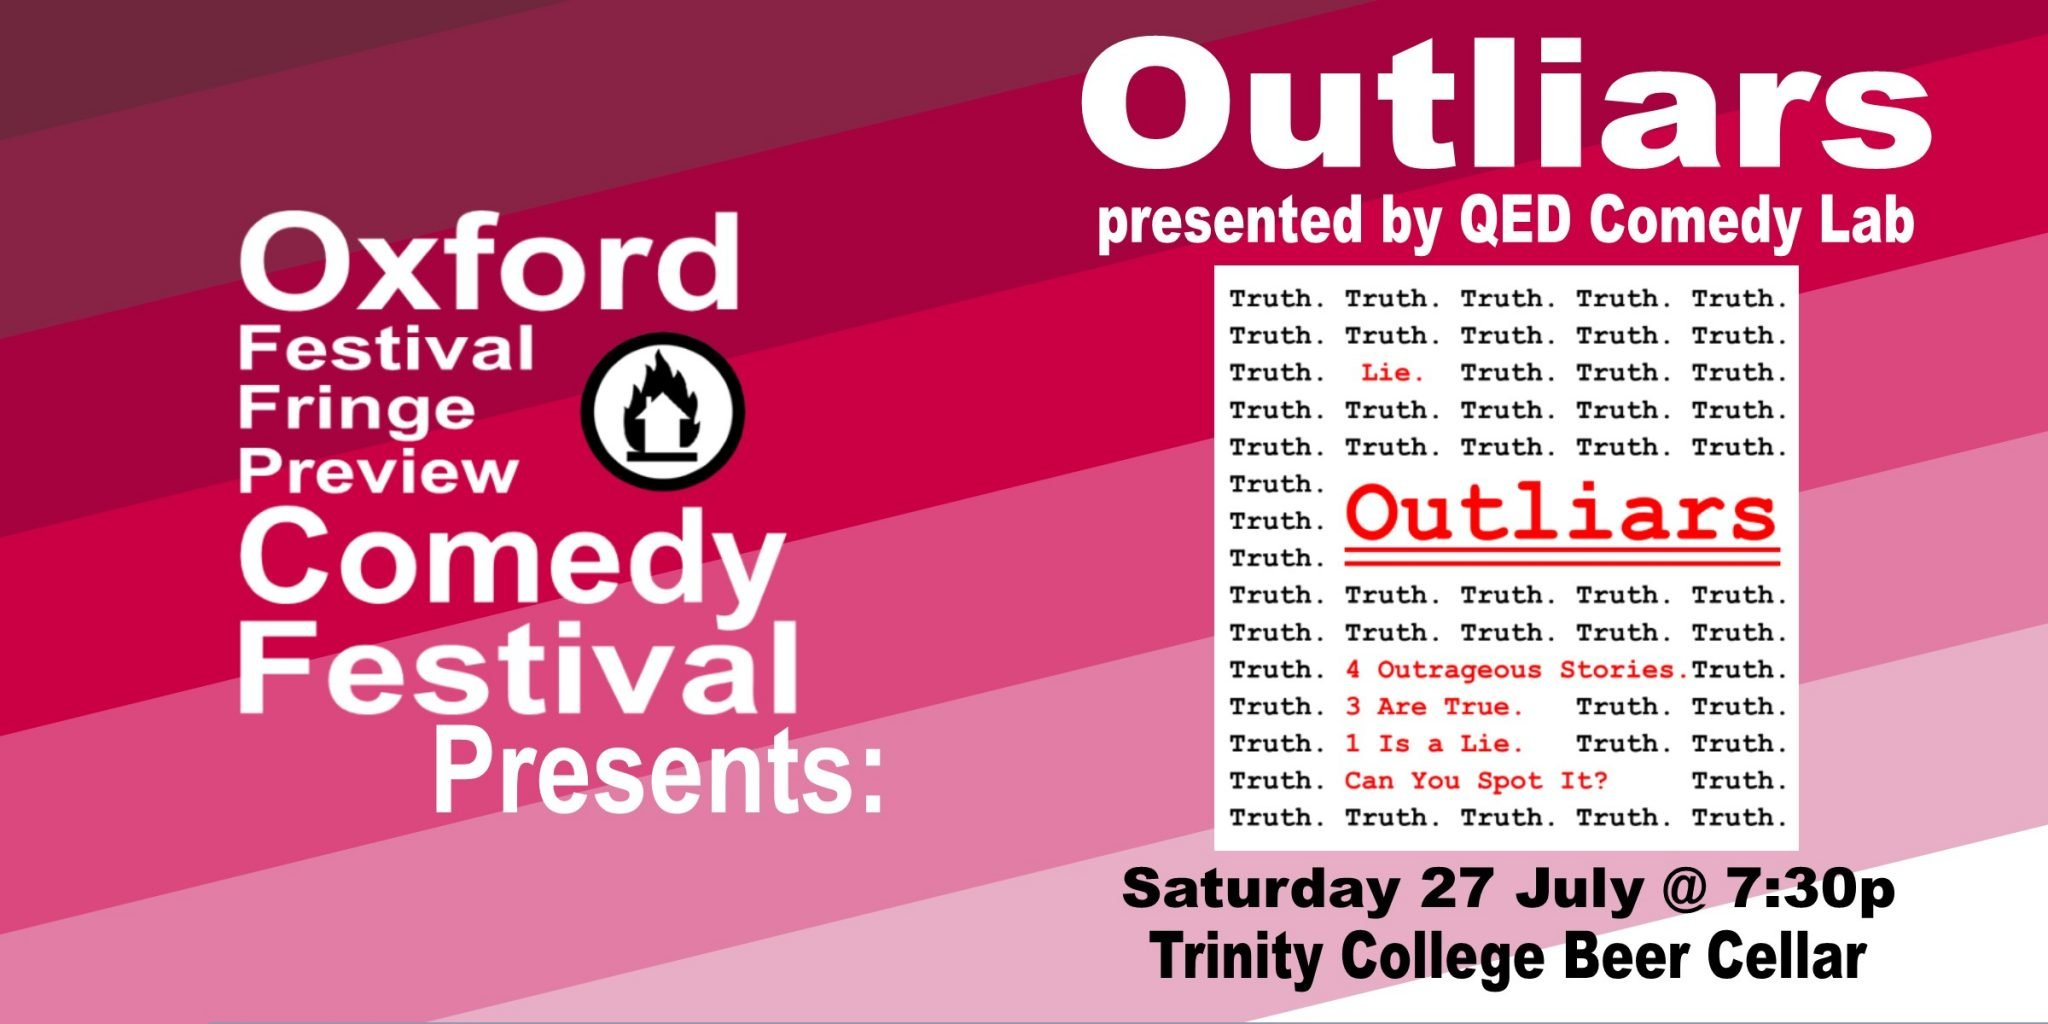 Oxford Comedy Festival 2019 presents Outliars by QED Comedy Lab